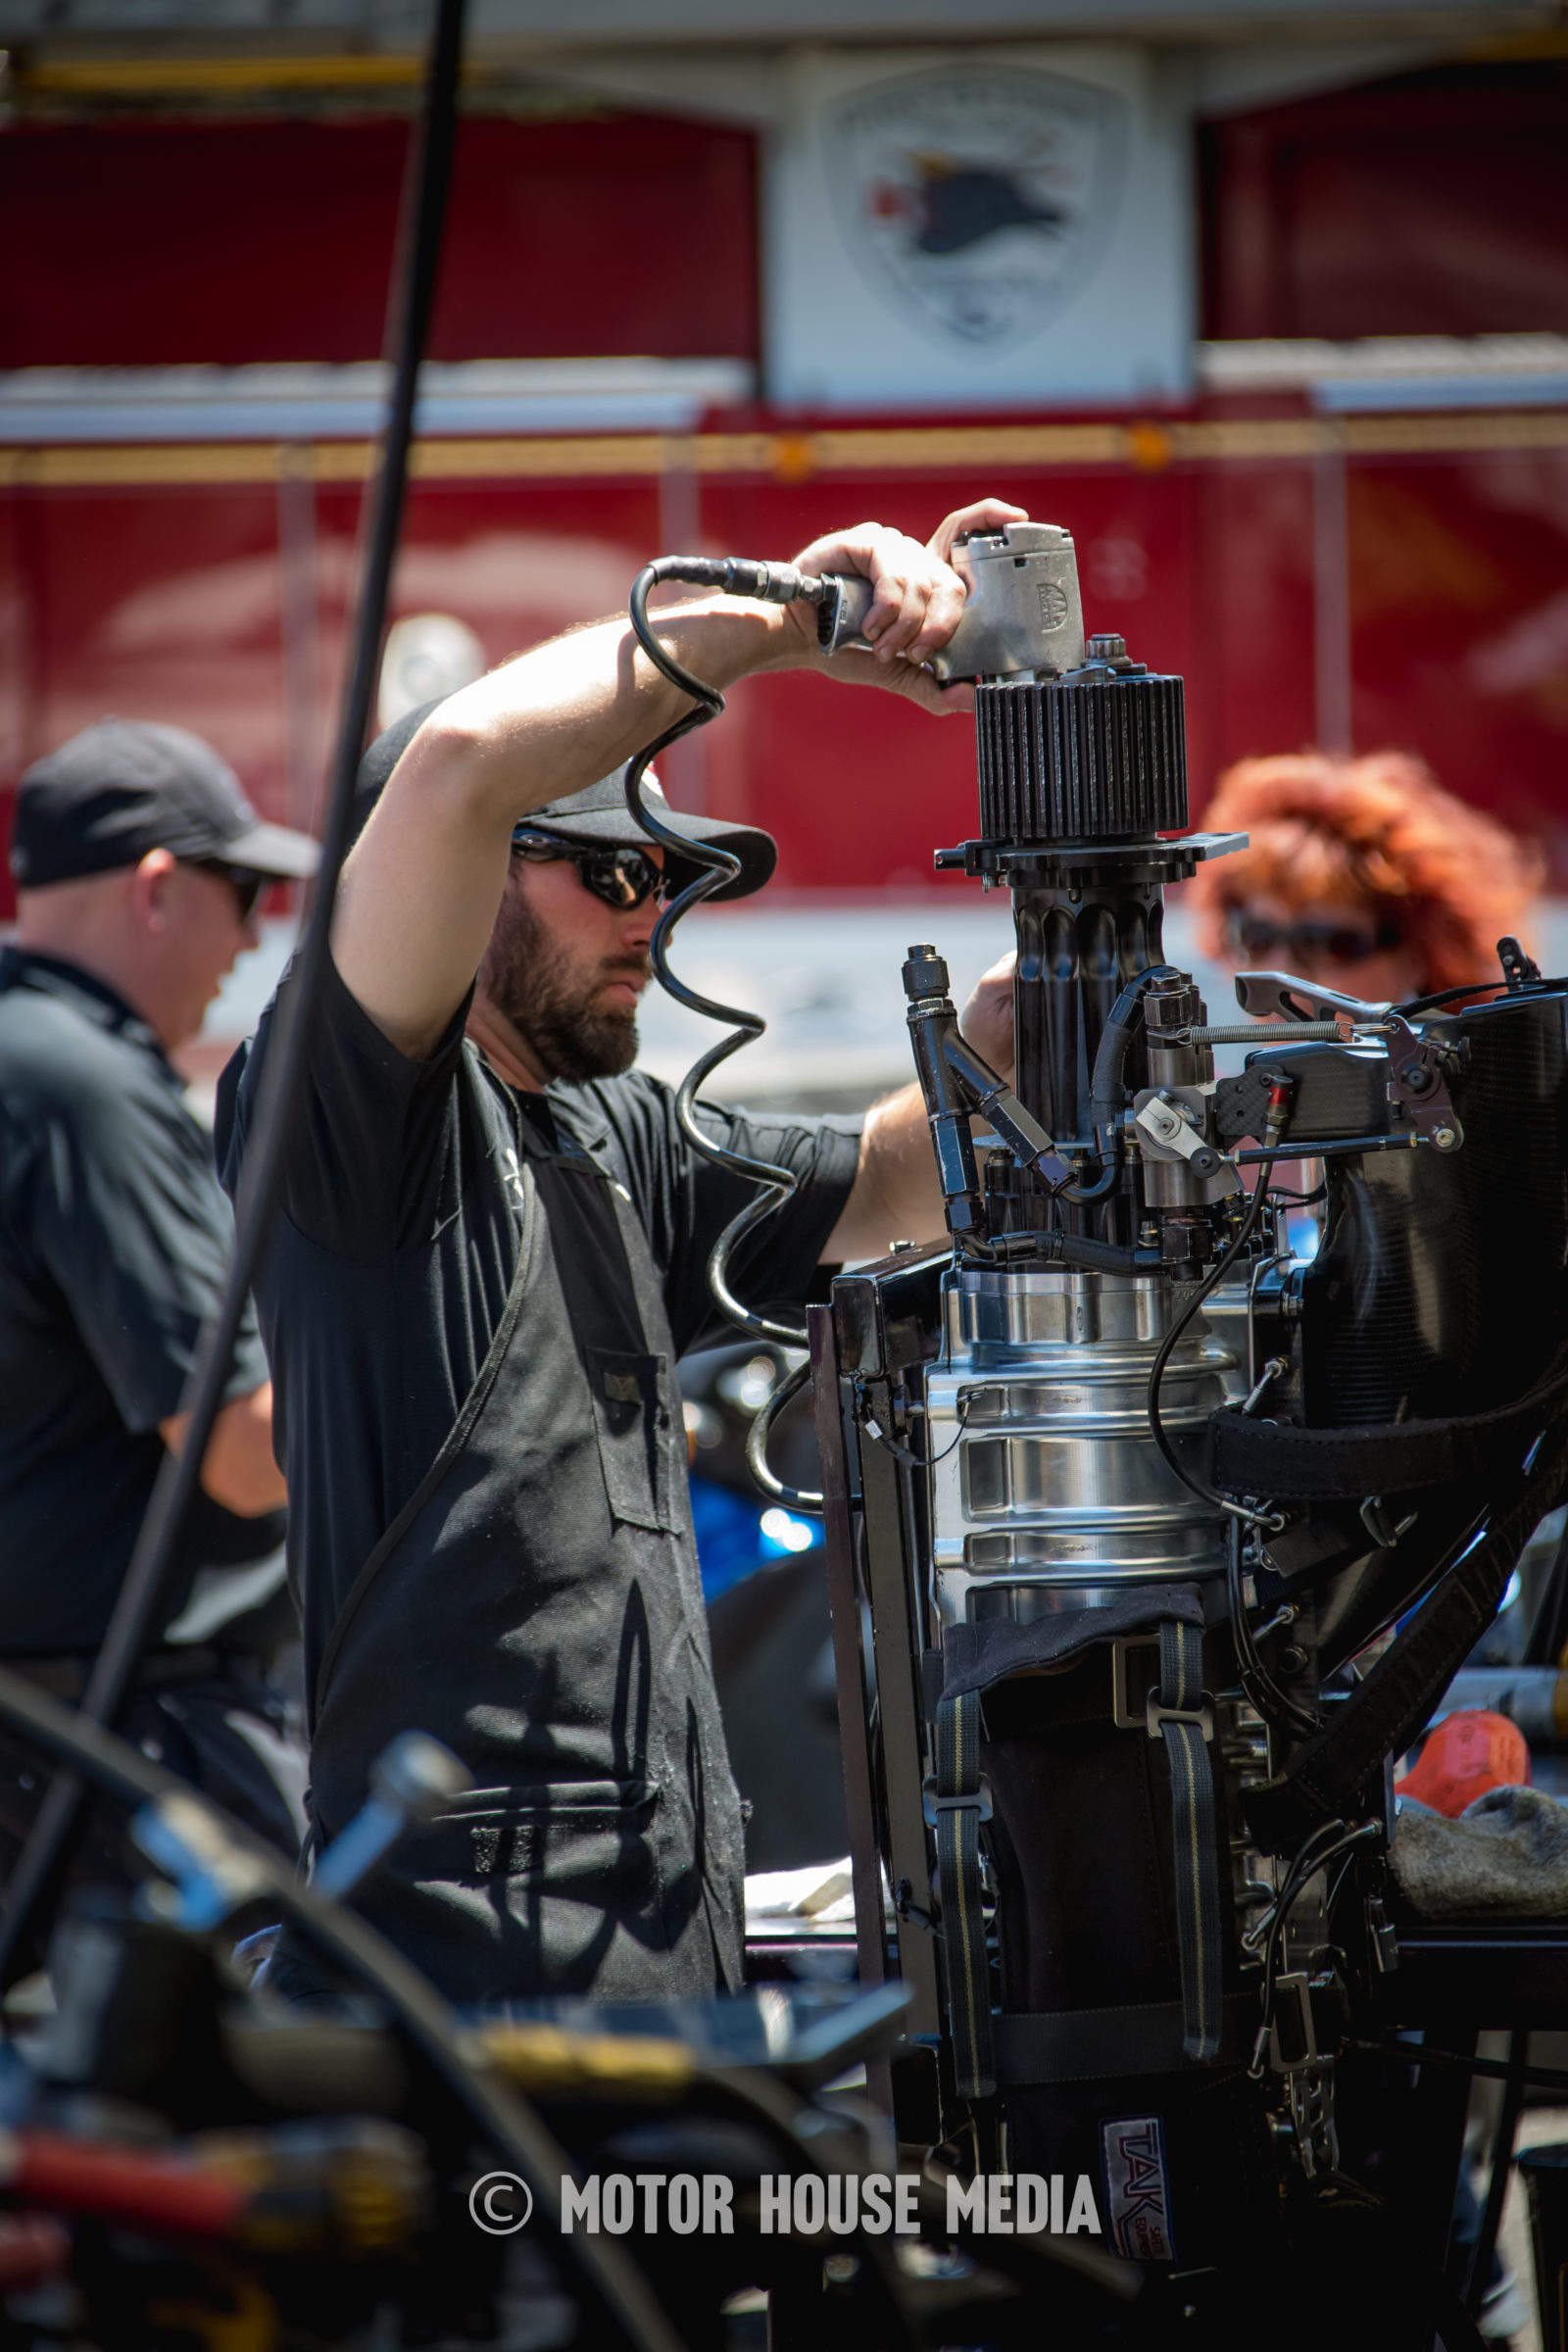 NHRA's Courtney Force's crew member taking apart supercharger